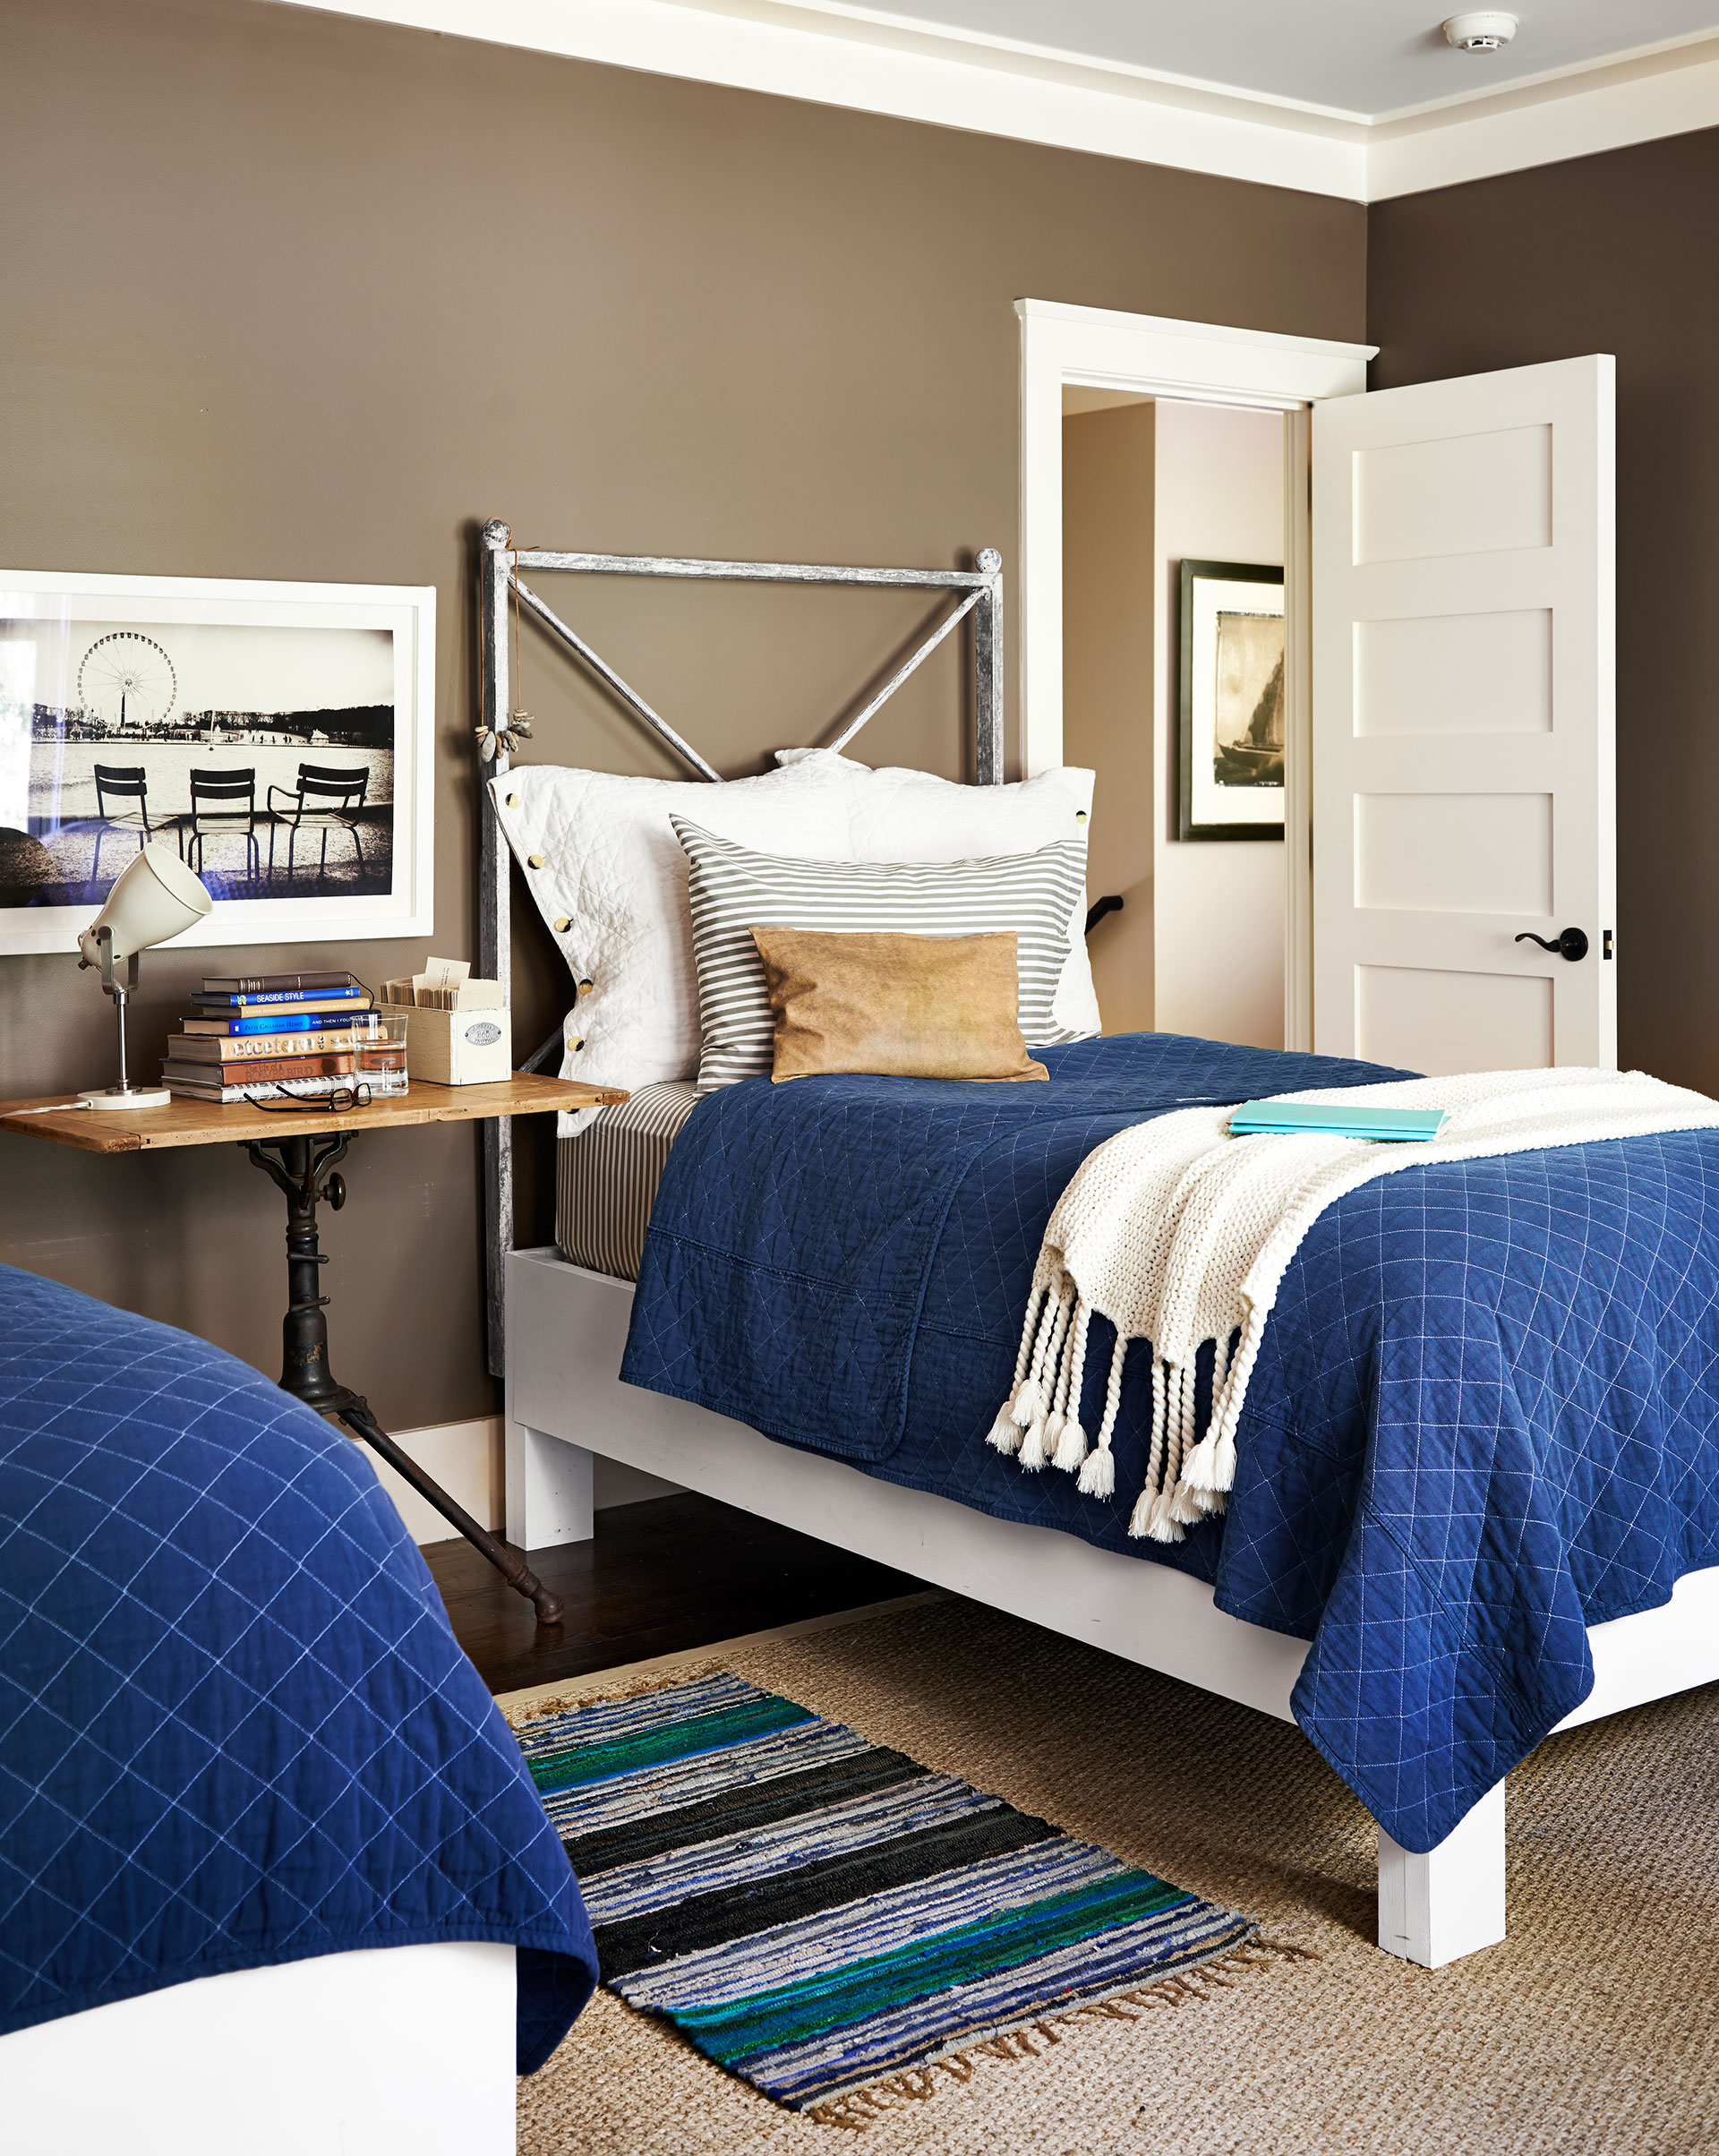 guest bedroom ideas 30+ guest bedroom pictures - decor ideas for guest rooms TIXDQCX